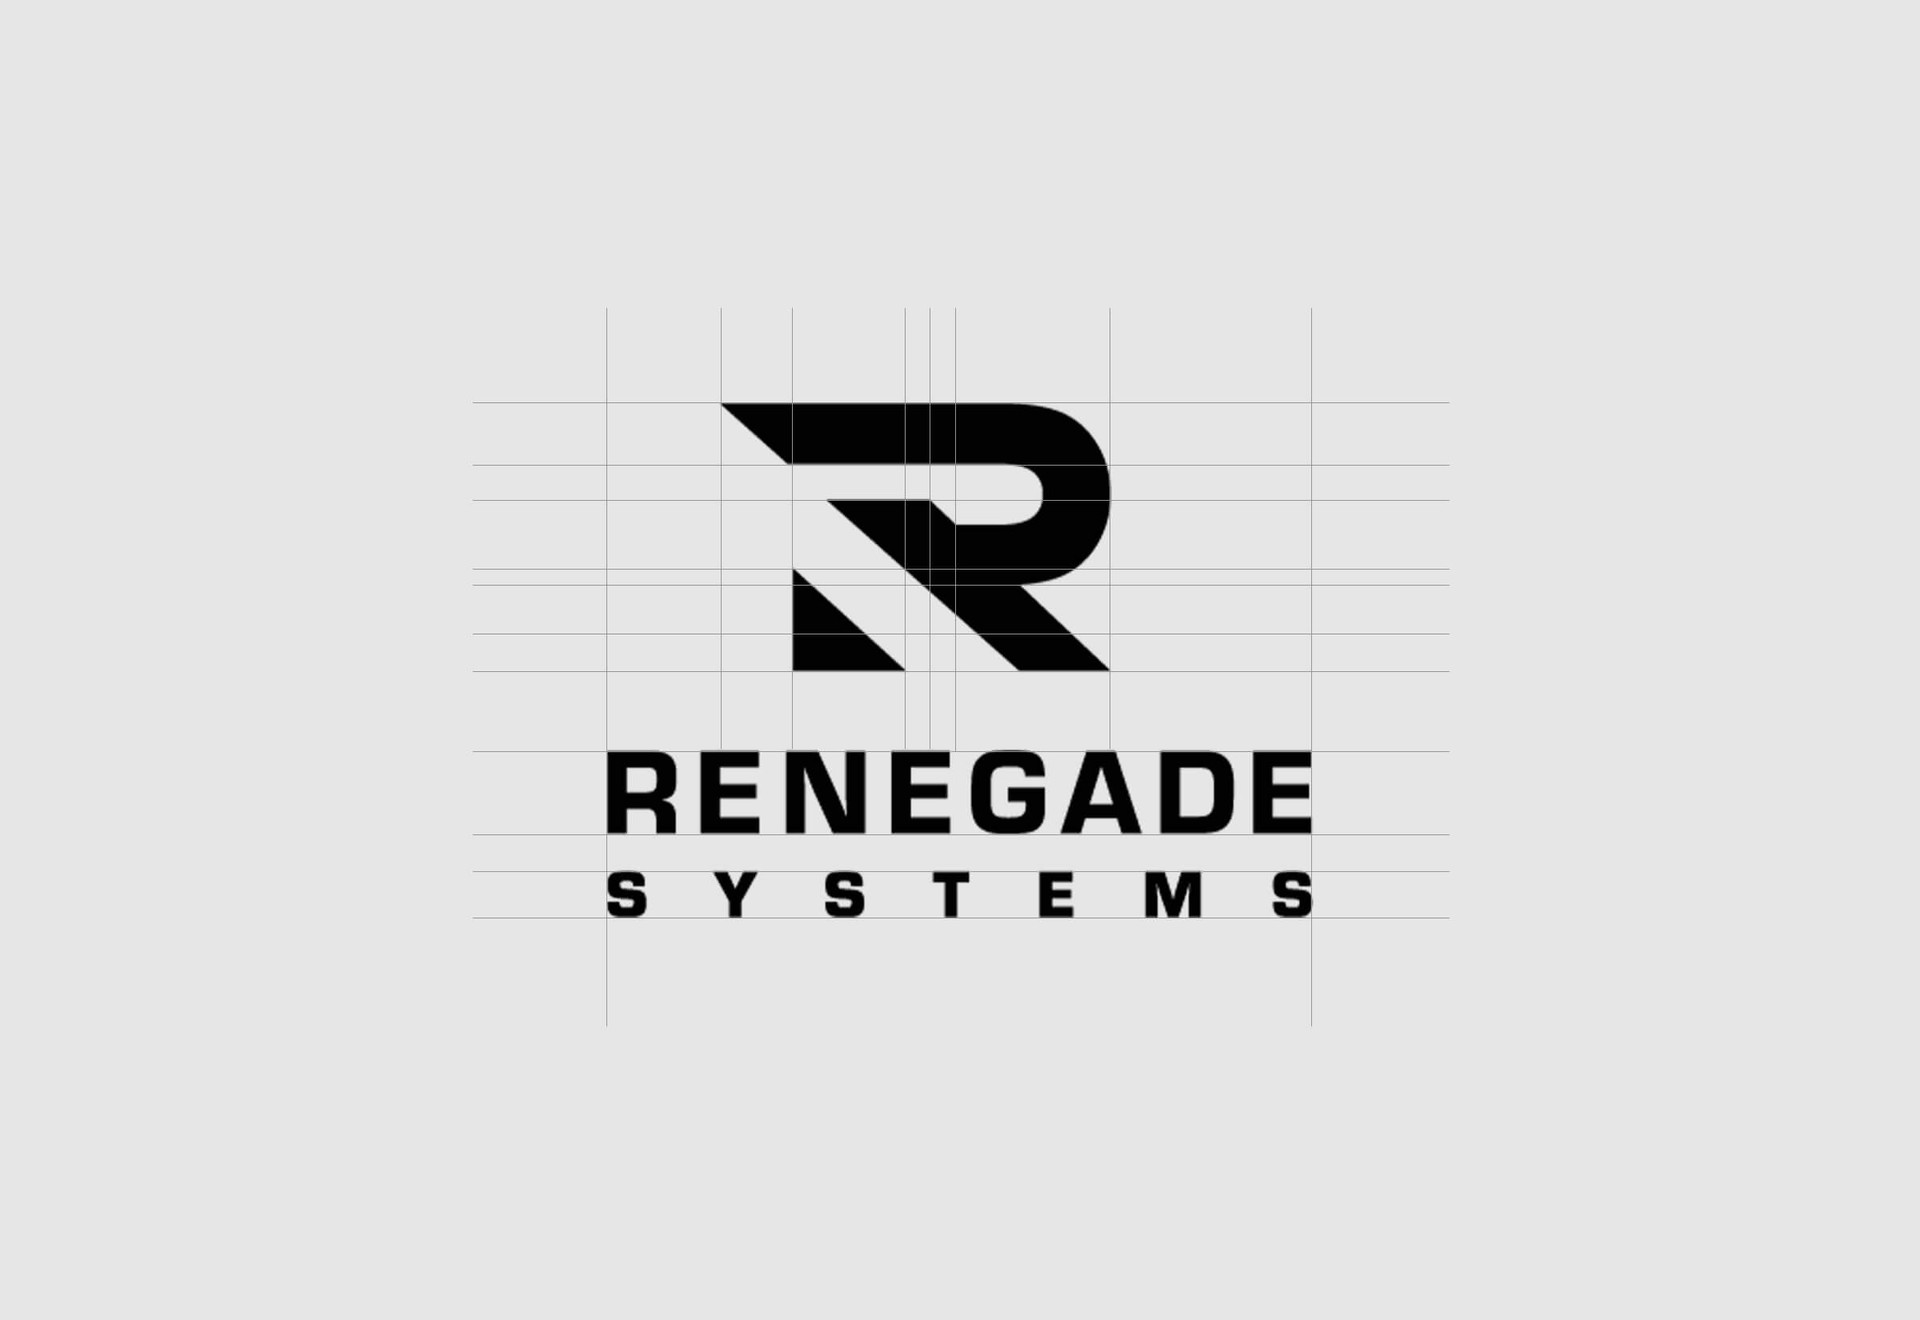 AreiaDesign-Portfolio-RenegadeSystems-3.